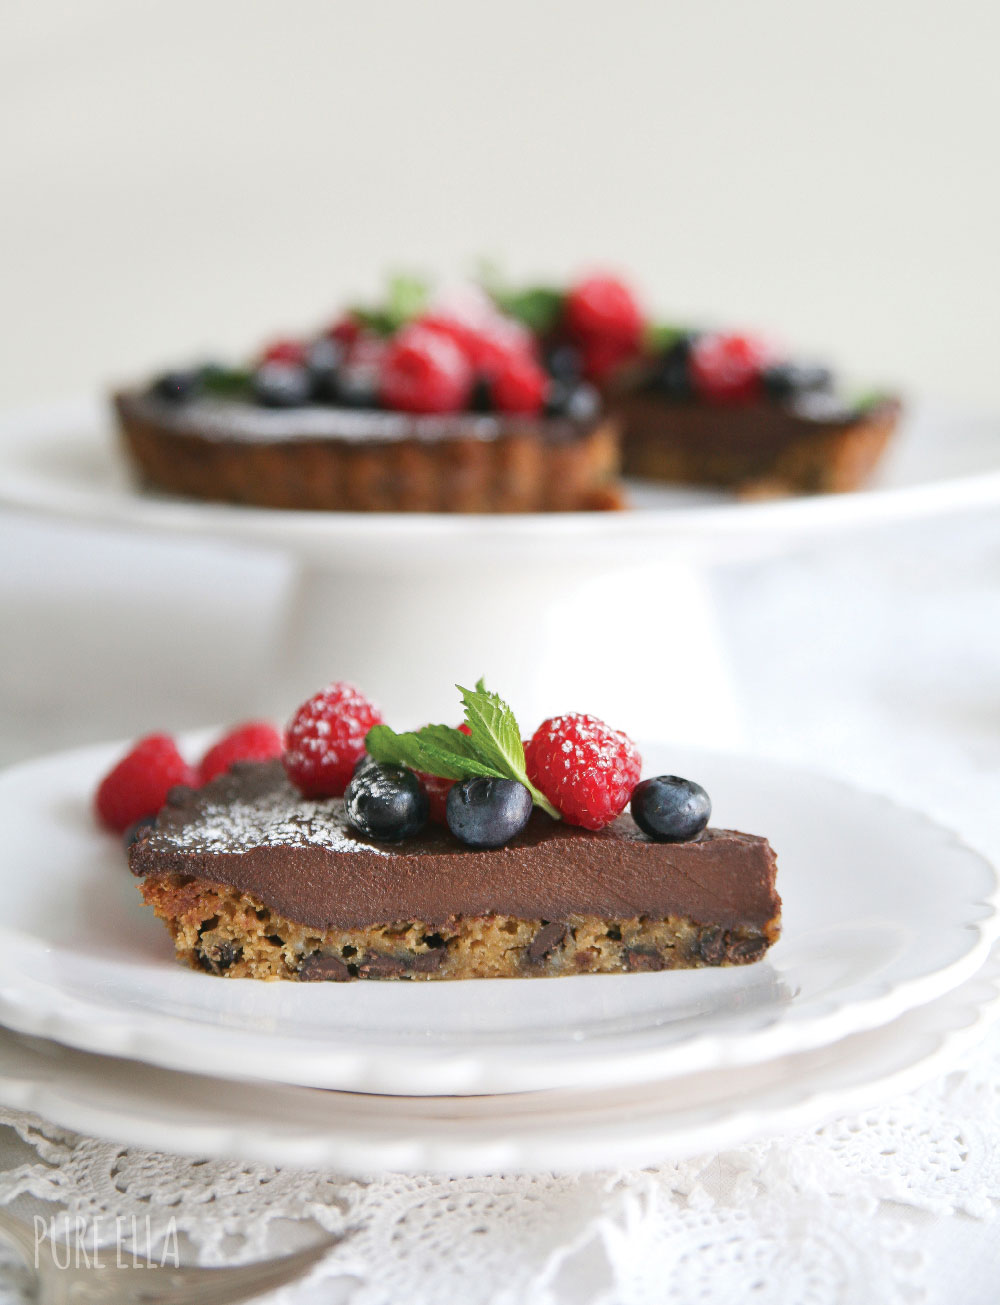 Pure-Ella-Chocolate-Chip-Cookie-Chocolate-Tart-Sweets-from-the-Earth15